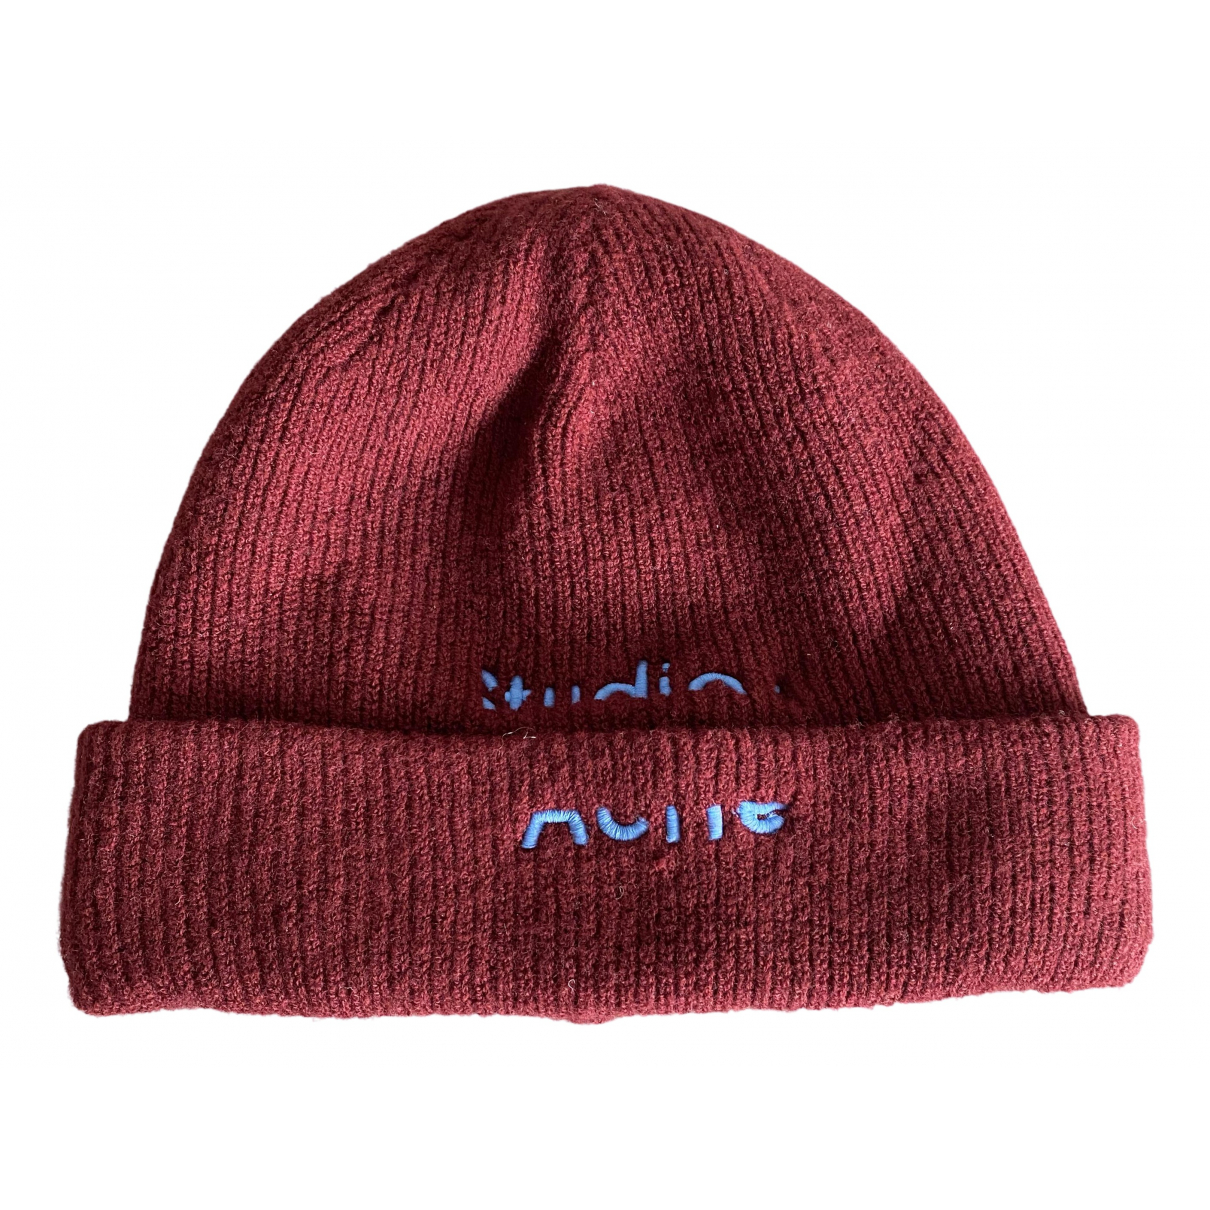 Acne Studios N Burgundy hat for Women 56 cm